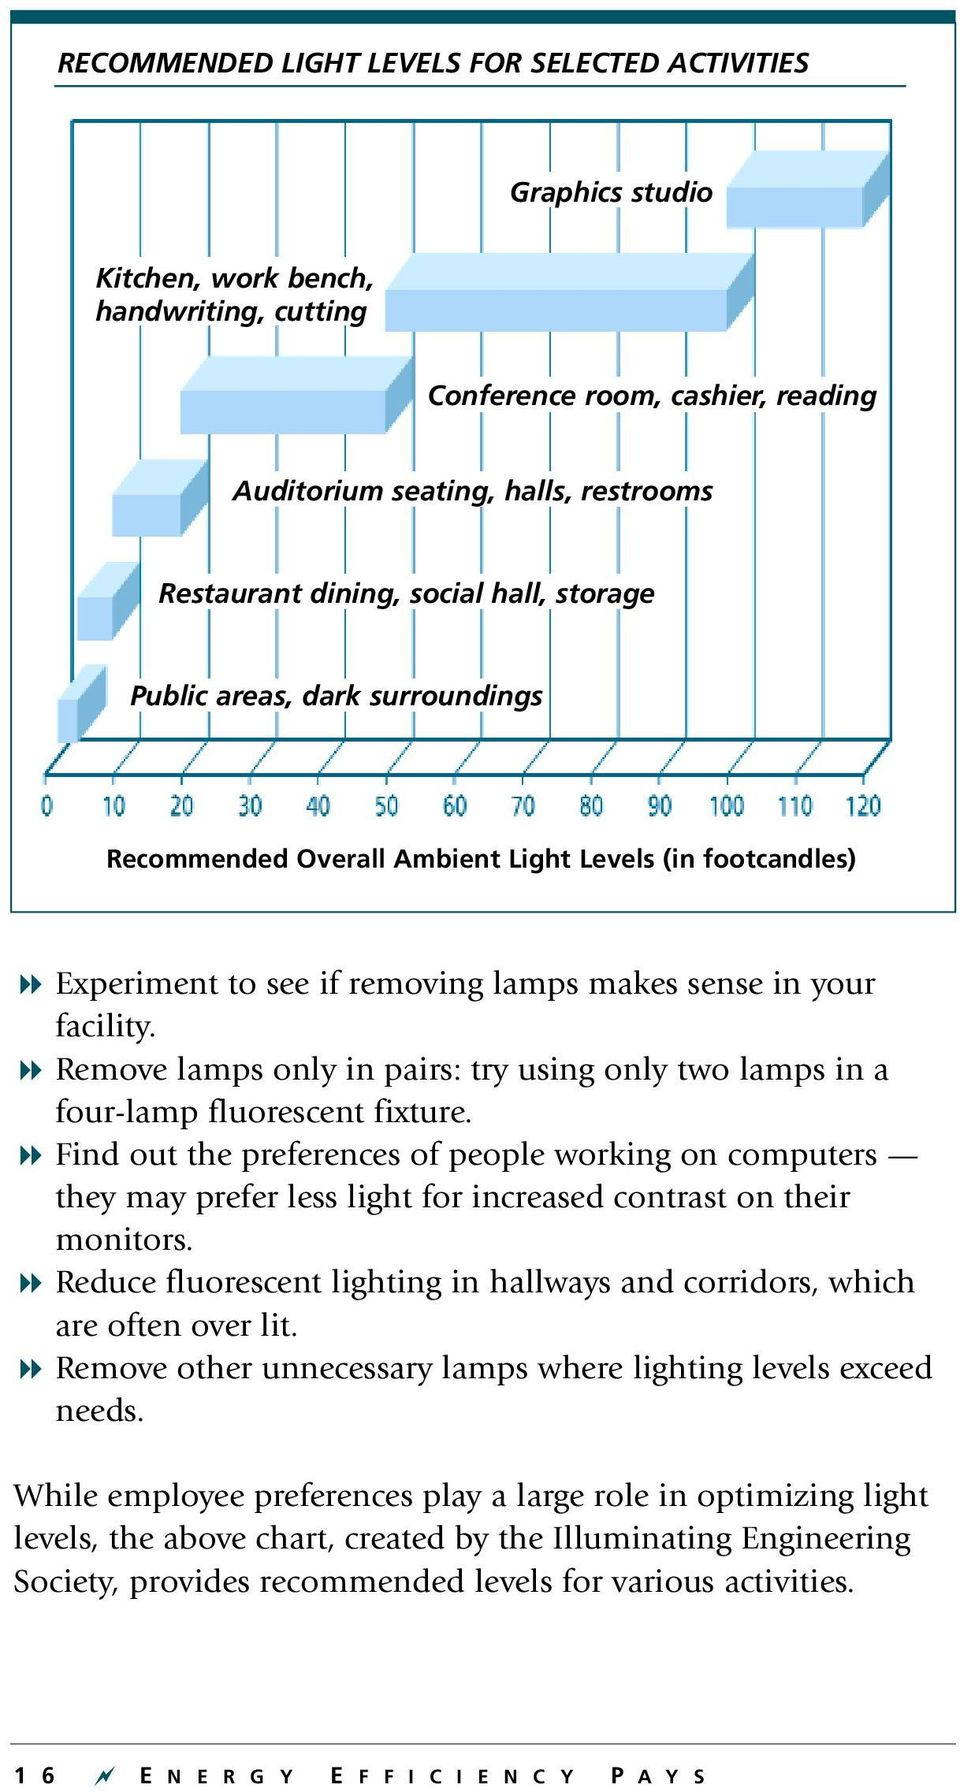 8 Remove lamps only in pairs: try using only two lamps in a four-lamp fluorescent fixture.